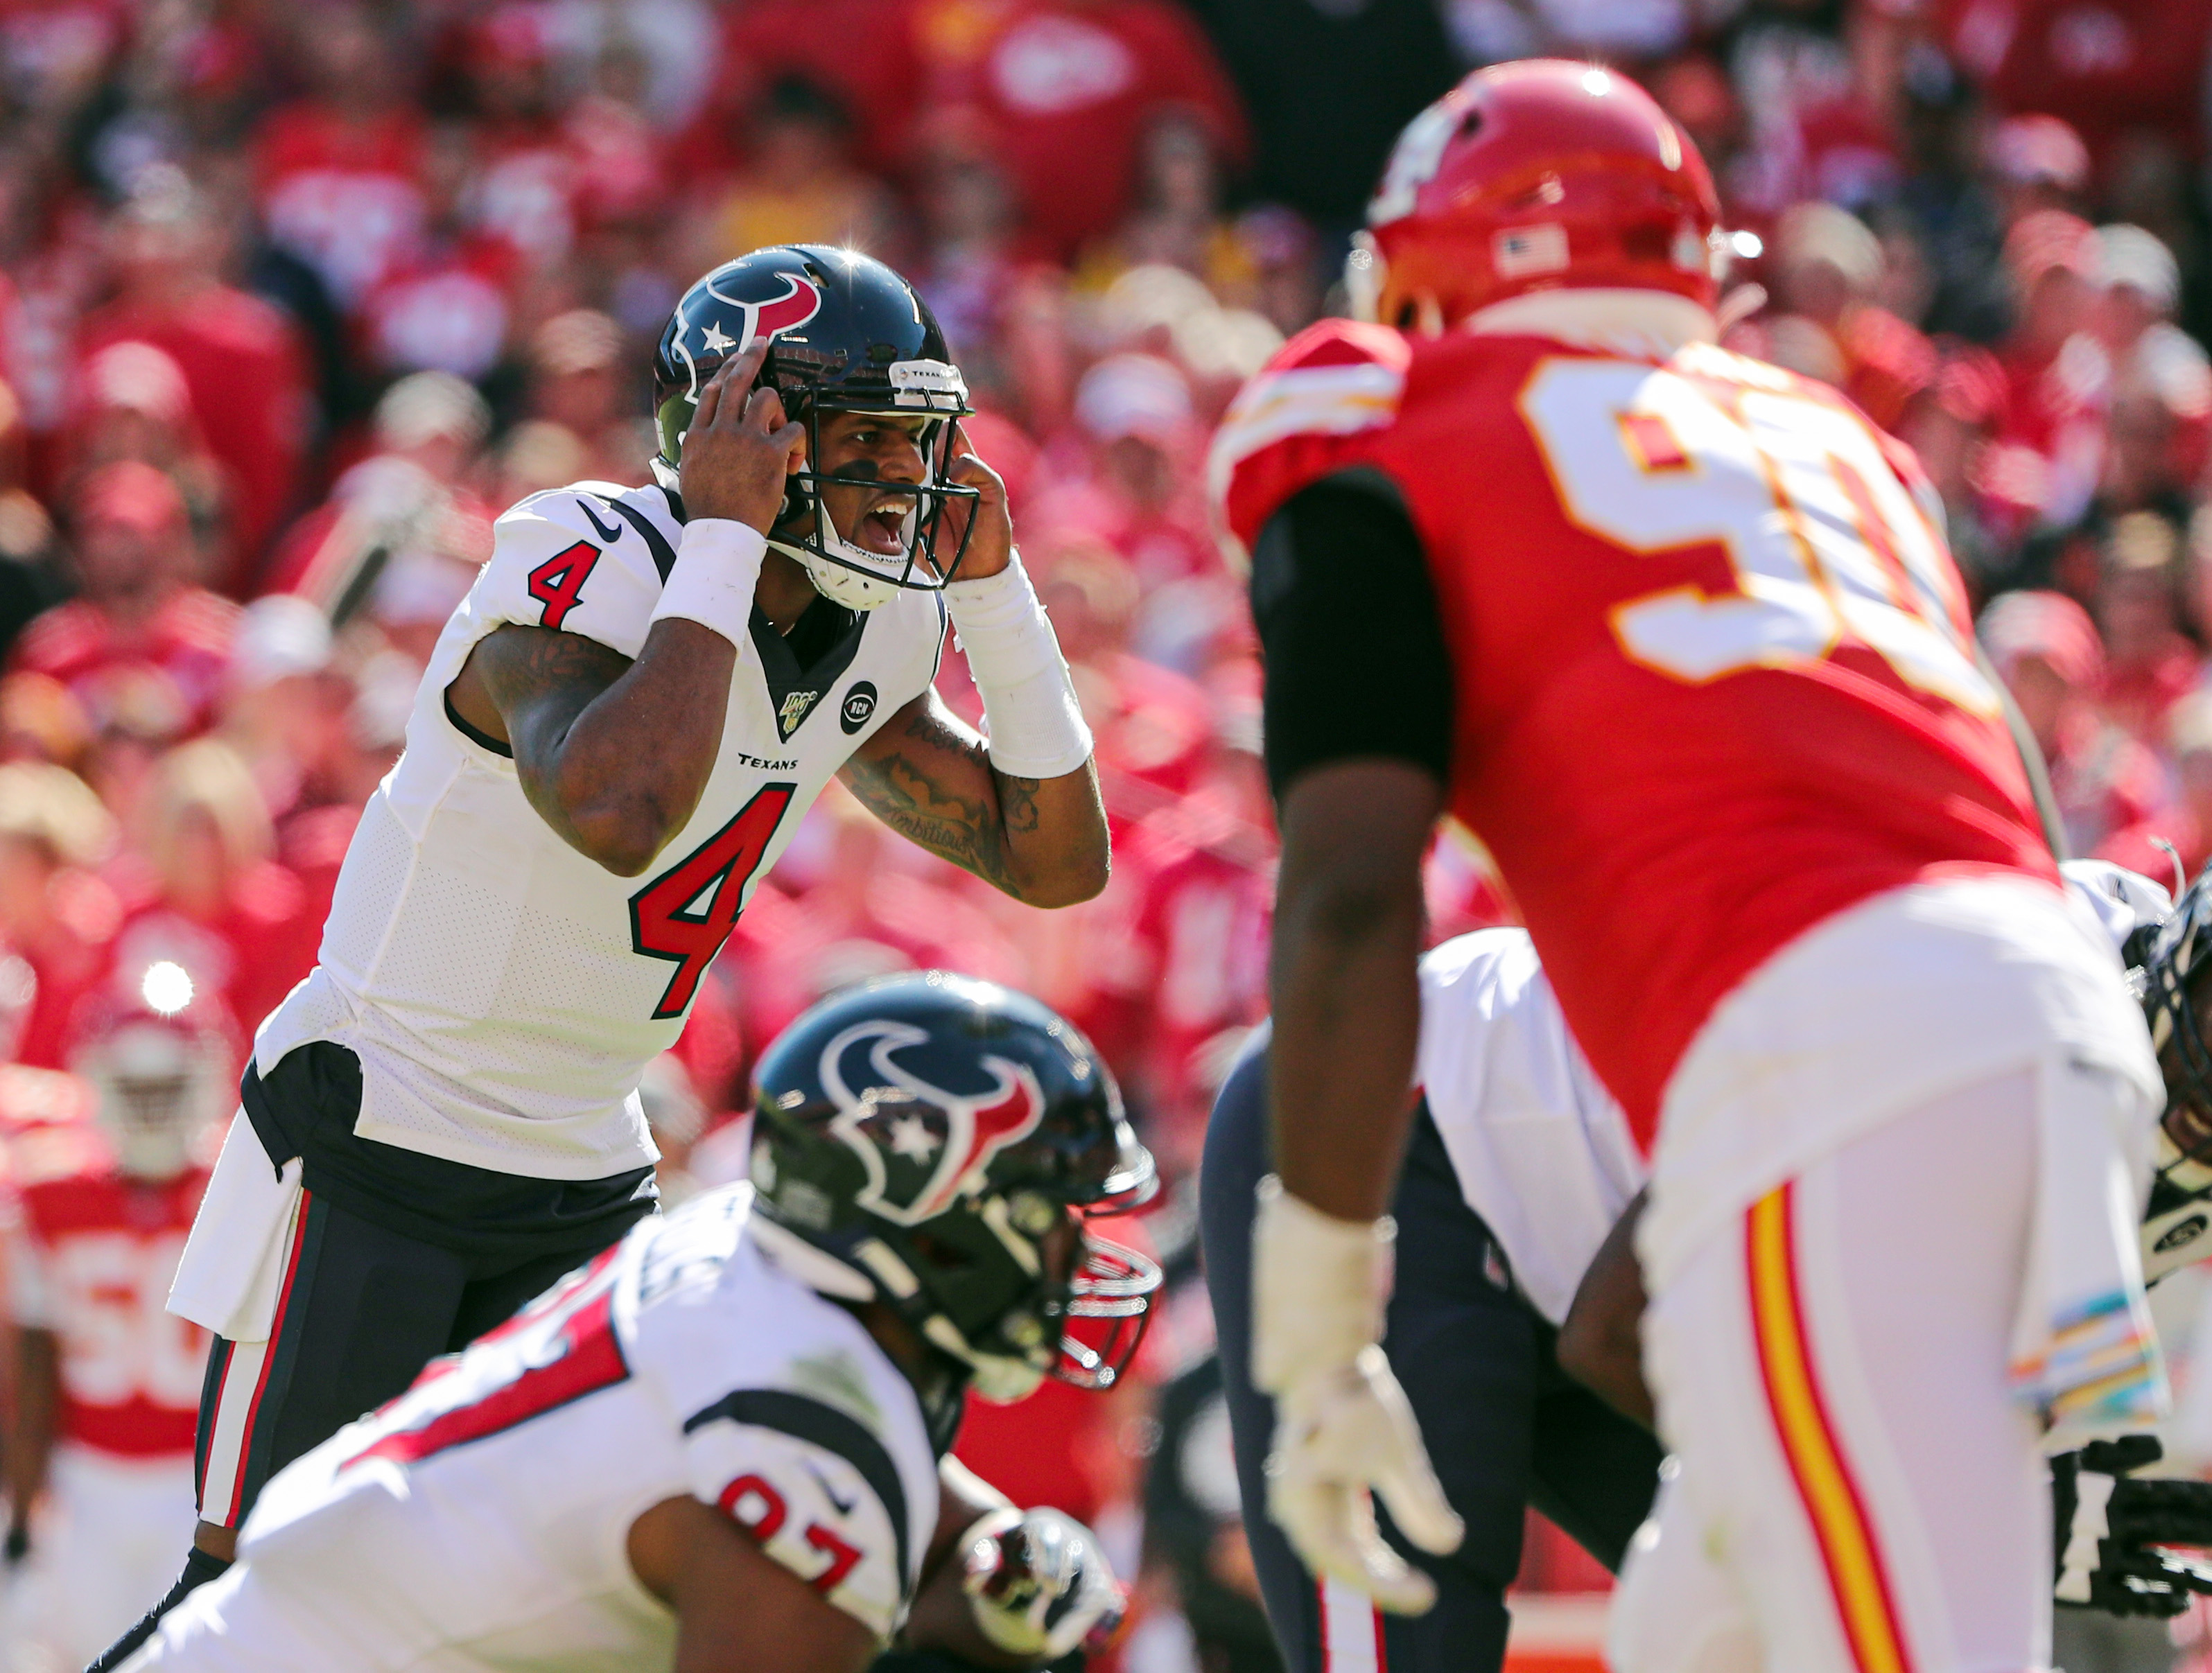 Deshaun Watson:  The only choice for Houston, is to trade their QB away